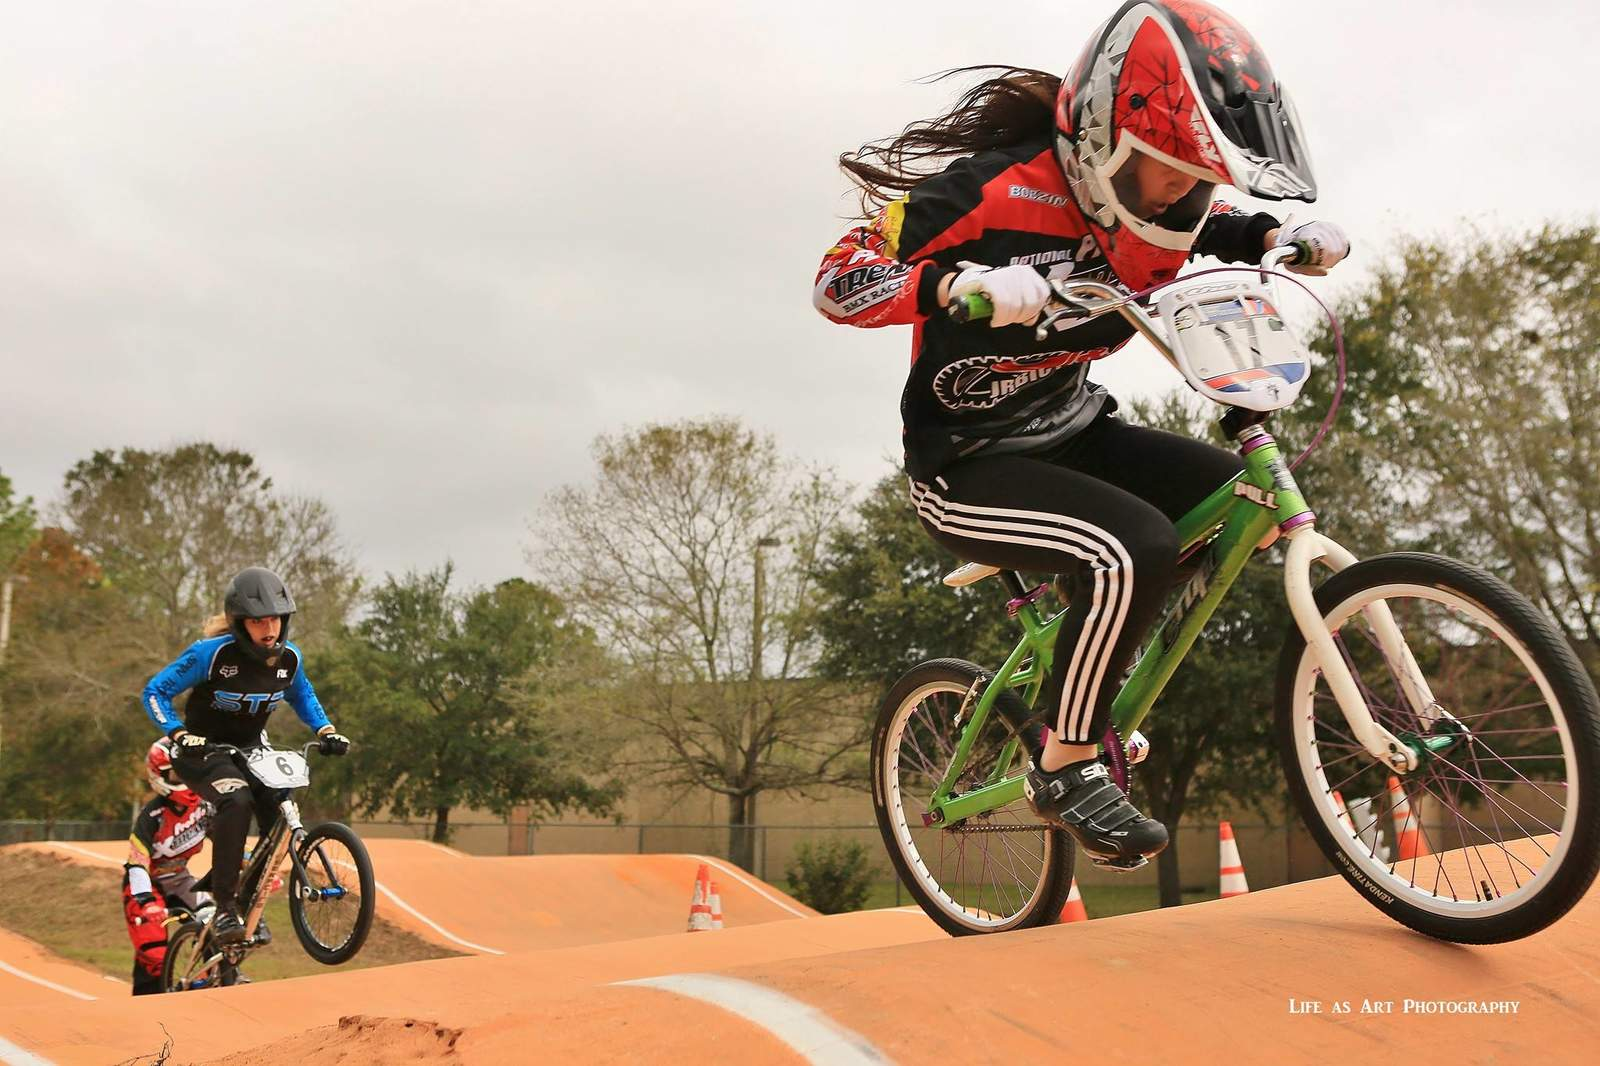 http://uploads.bmxmuseum.com/user-images/156598/23550106_1627432187339611_436434391725846355_o5a158413a6.jpg